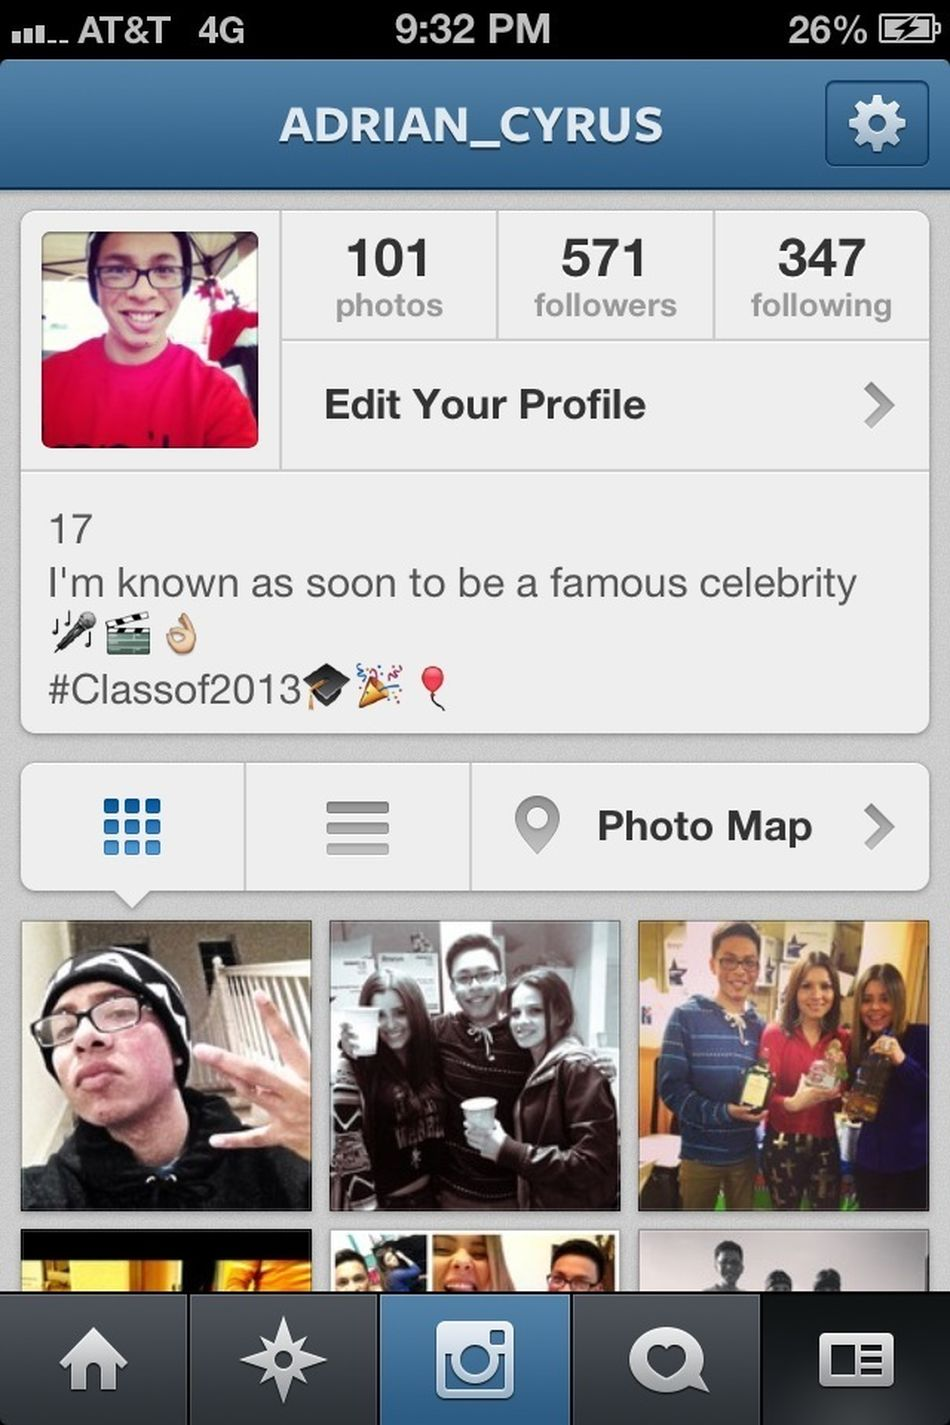 Follow Me On Insta @adrian_cyrus